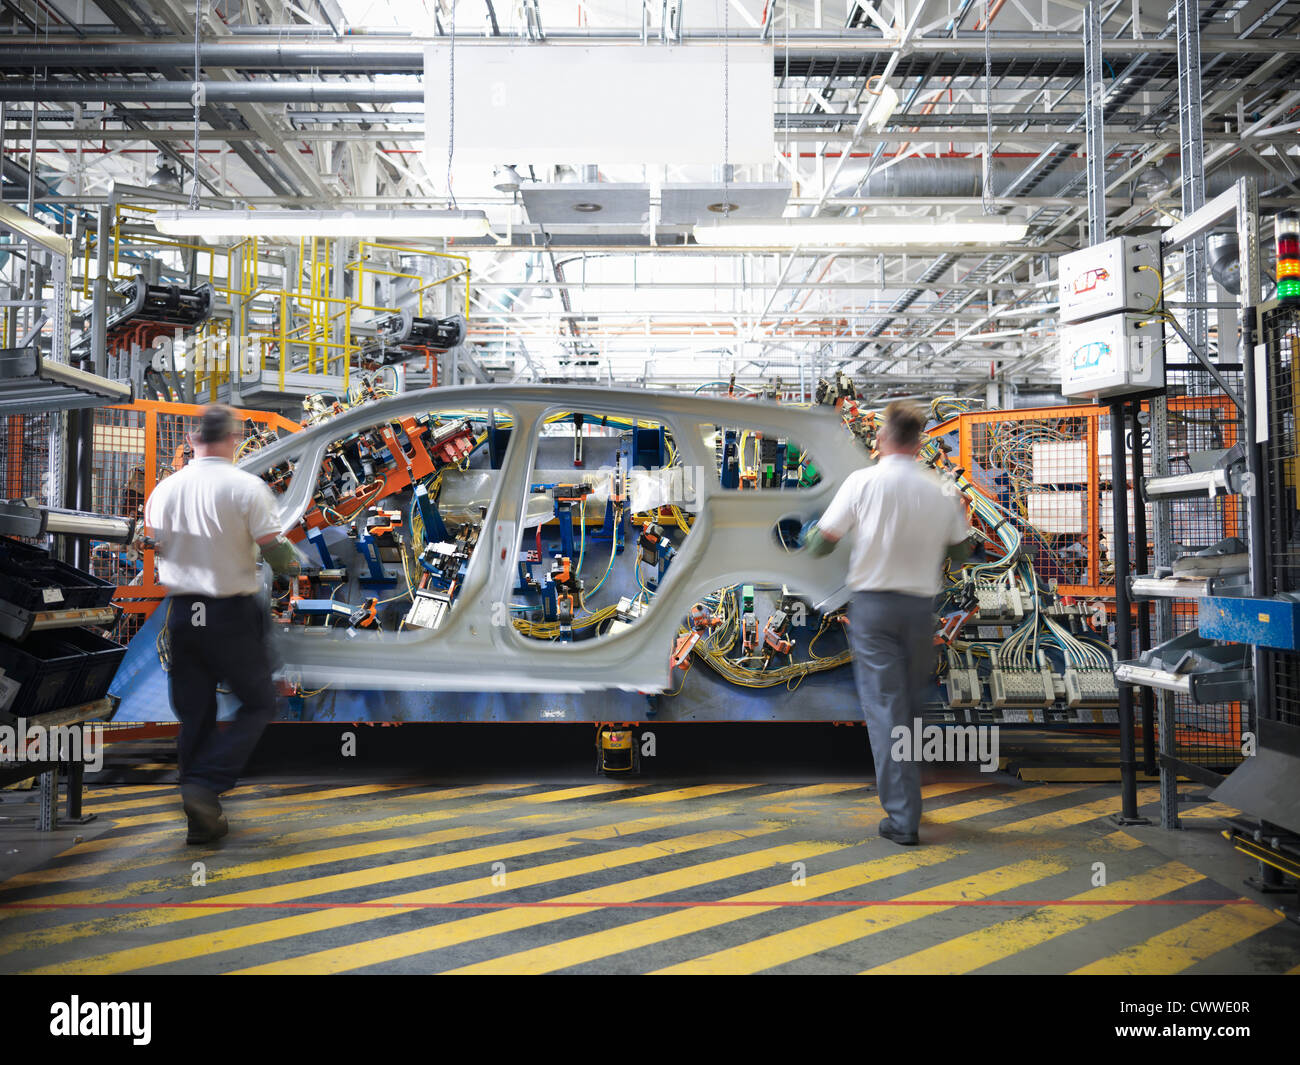 Workers with car body part in welding jig in car factory - Stock Image